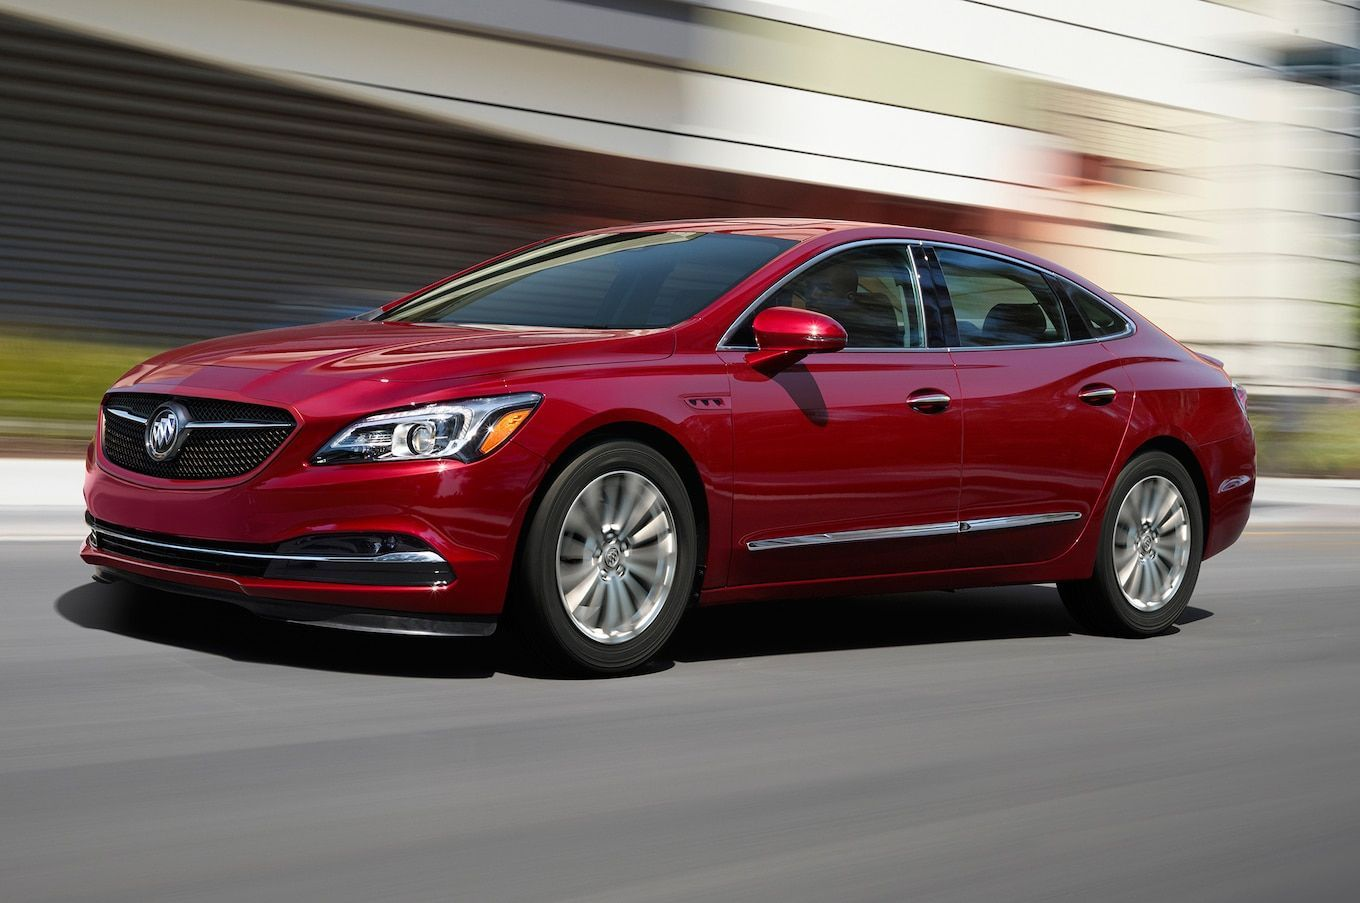 New 2019 Buick Cars Sd Test The Best Pricing Sedan